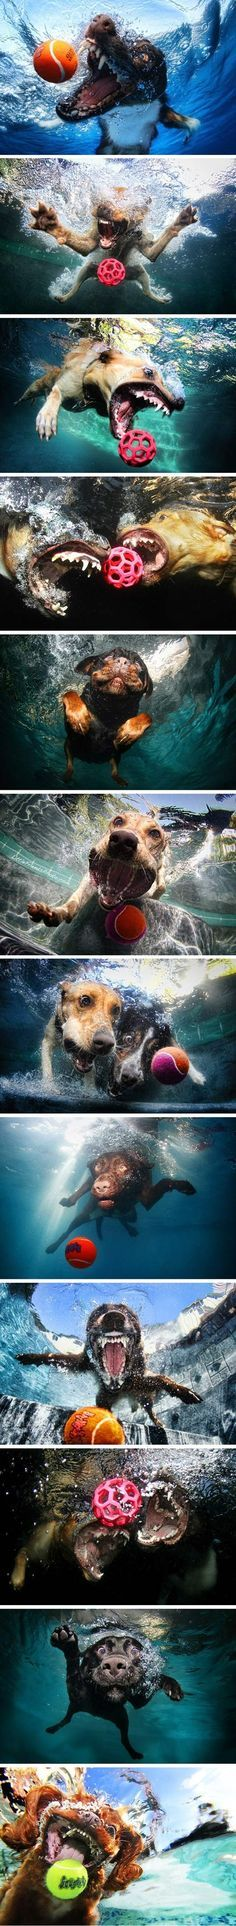 Dogs under water!